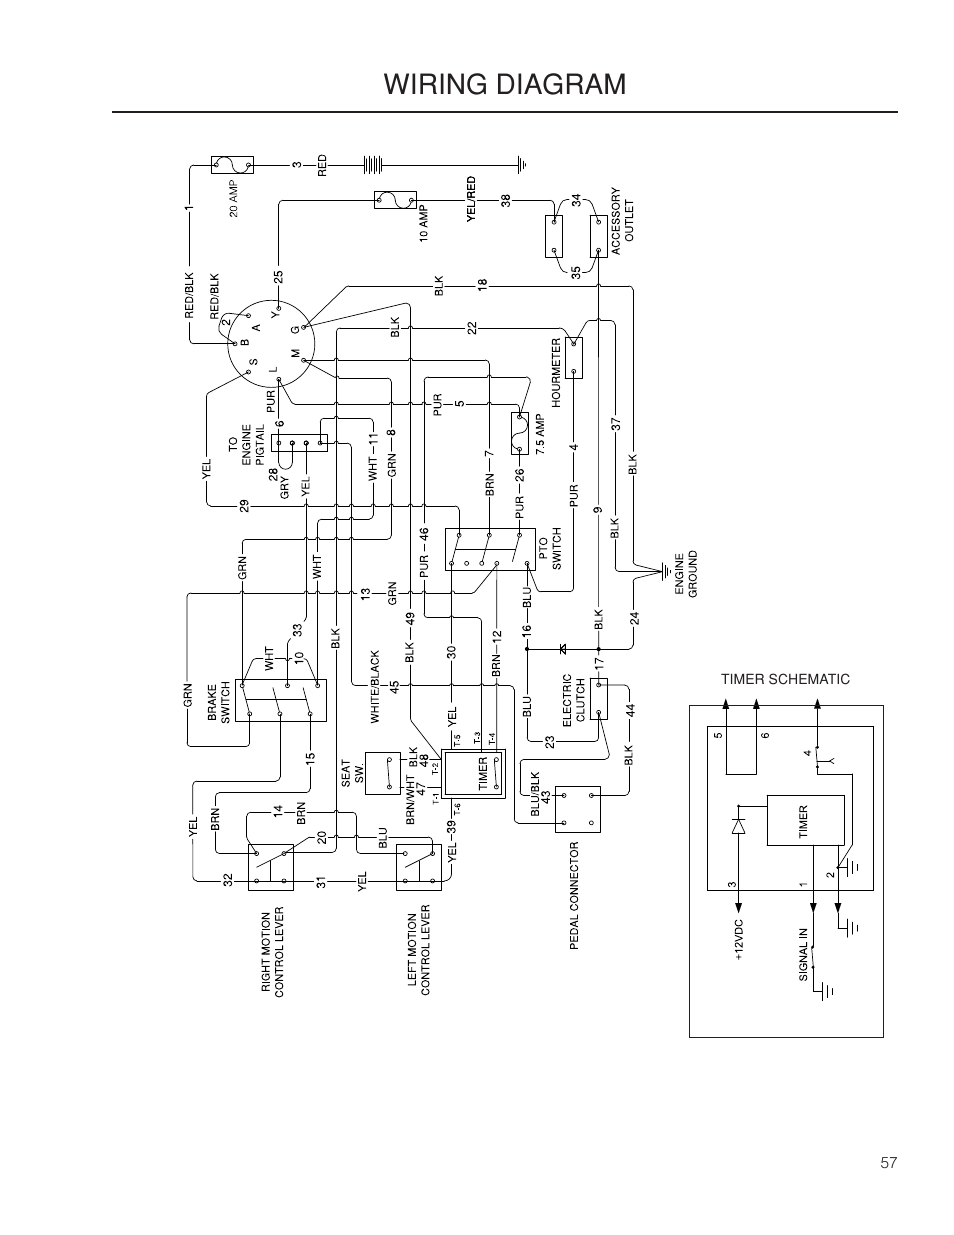 hight resolution of wiring diagrams wiring diagram dixon grizzly se 966516601 user manual page 57